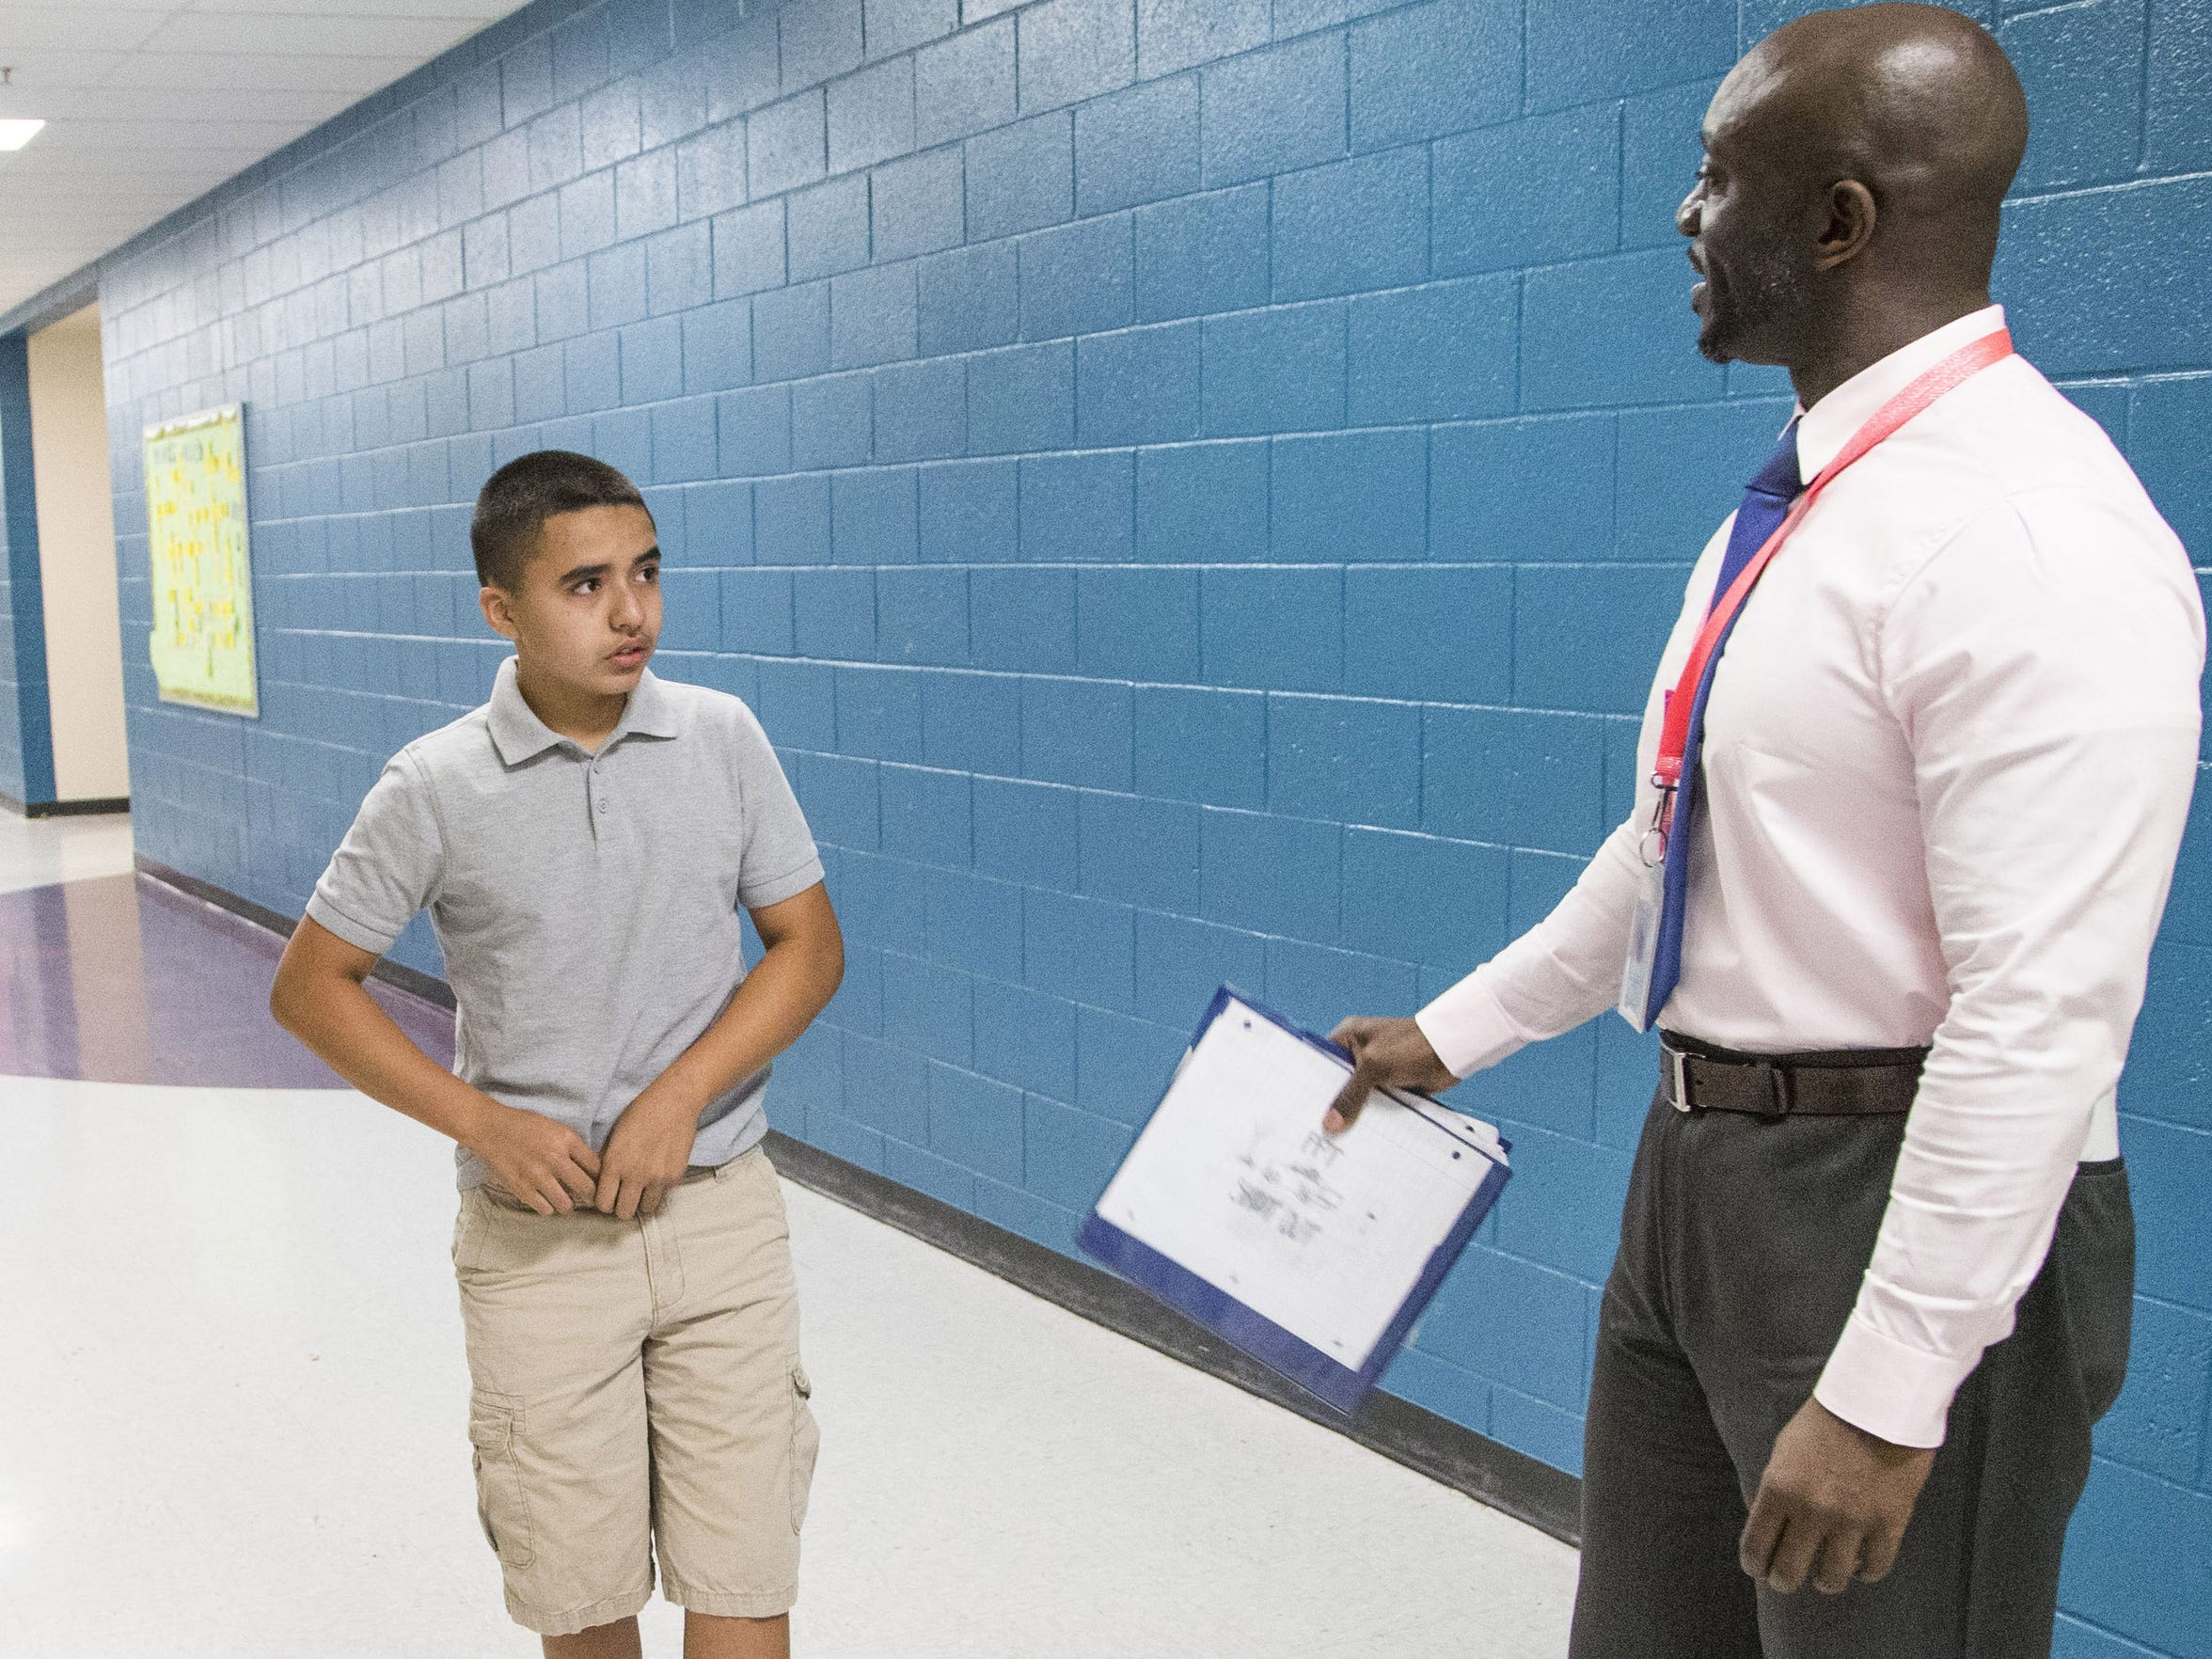 """Principal Eric Atuahene reminds student Alex Mata Cevas to tuck his shirt in before the start of the school at Quentin Elementary. """"Now you are ready to learn,"""" Atuahene tells Alex."""